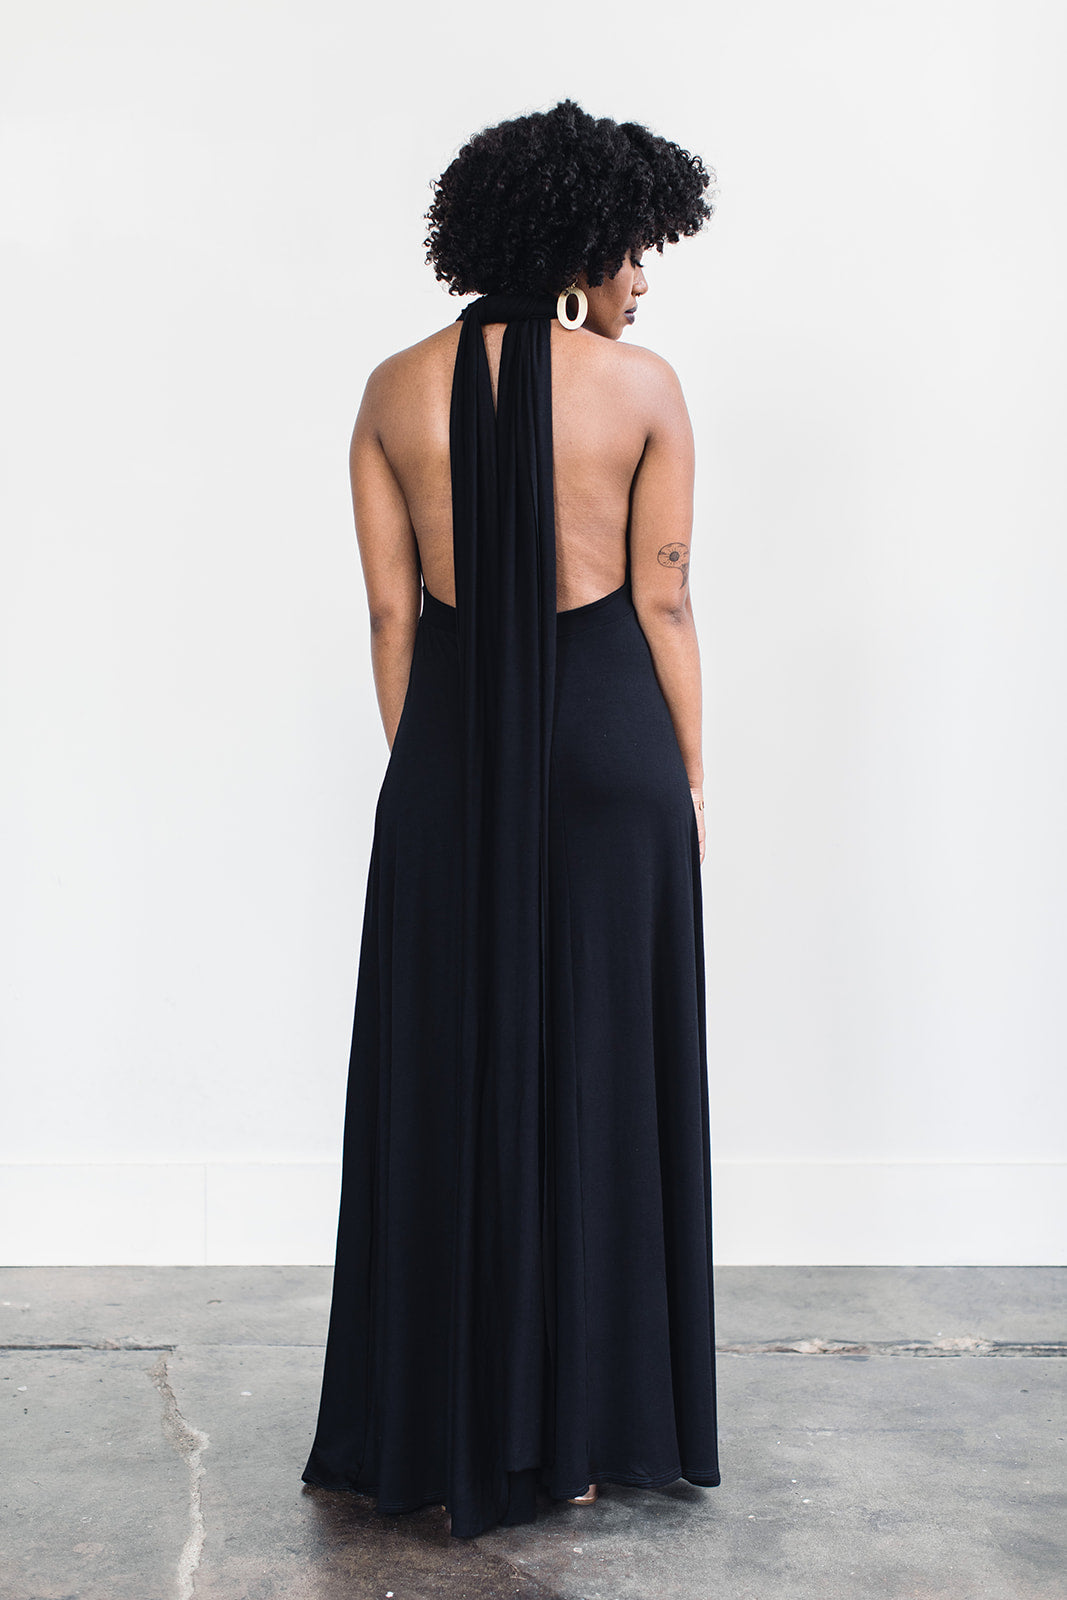 Ethically made evening gown